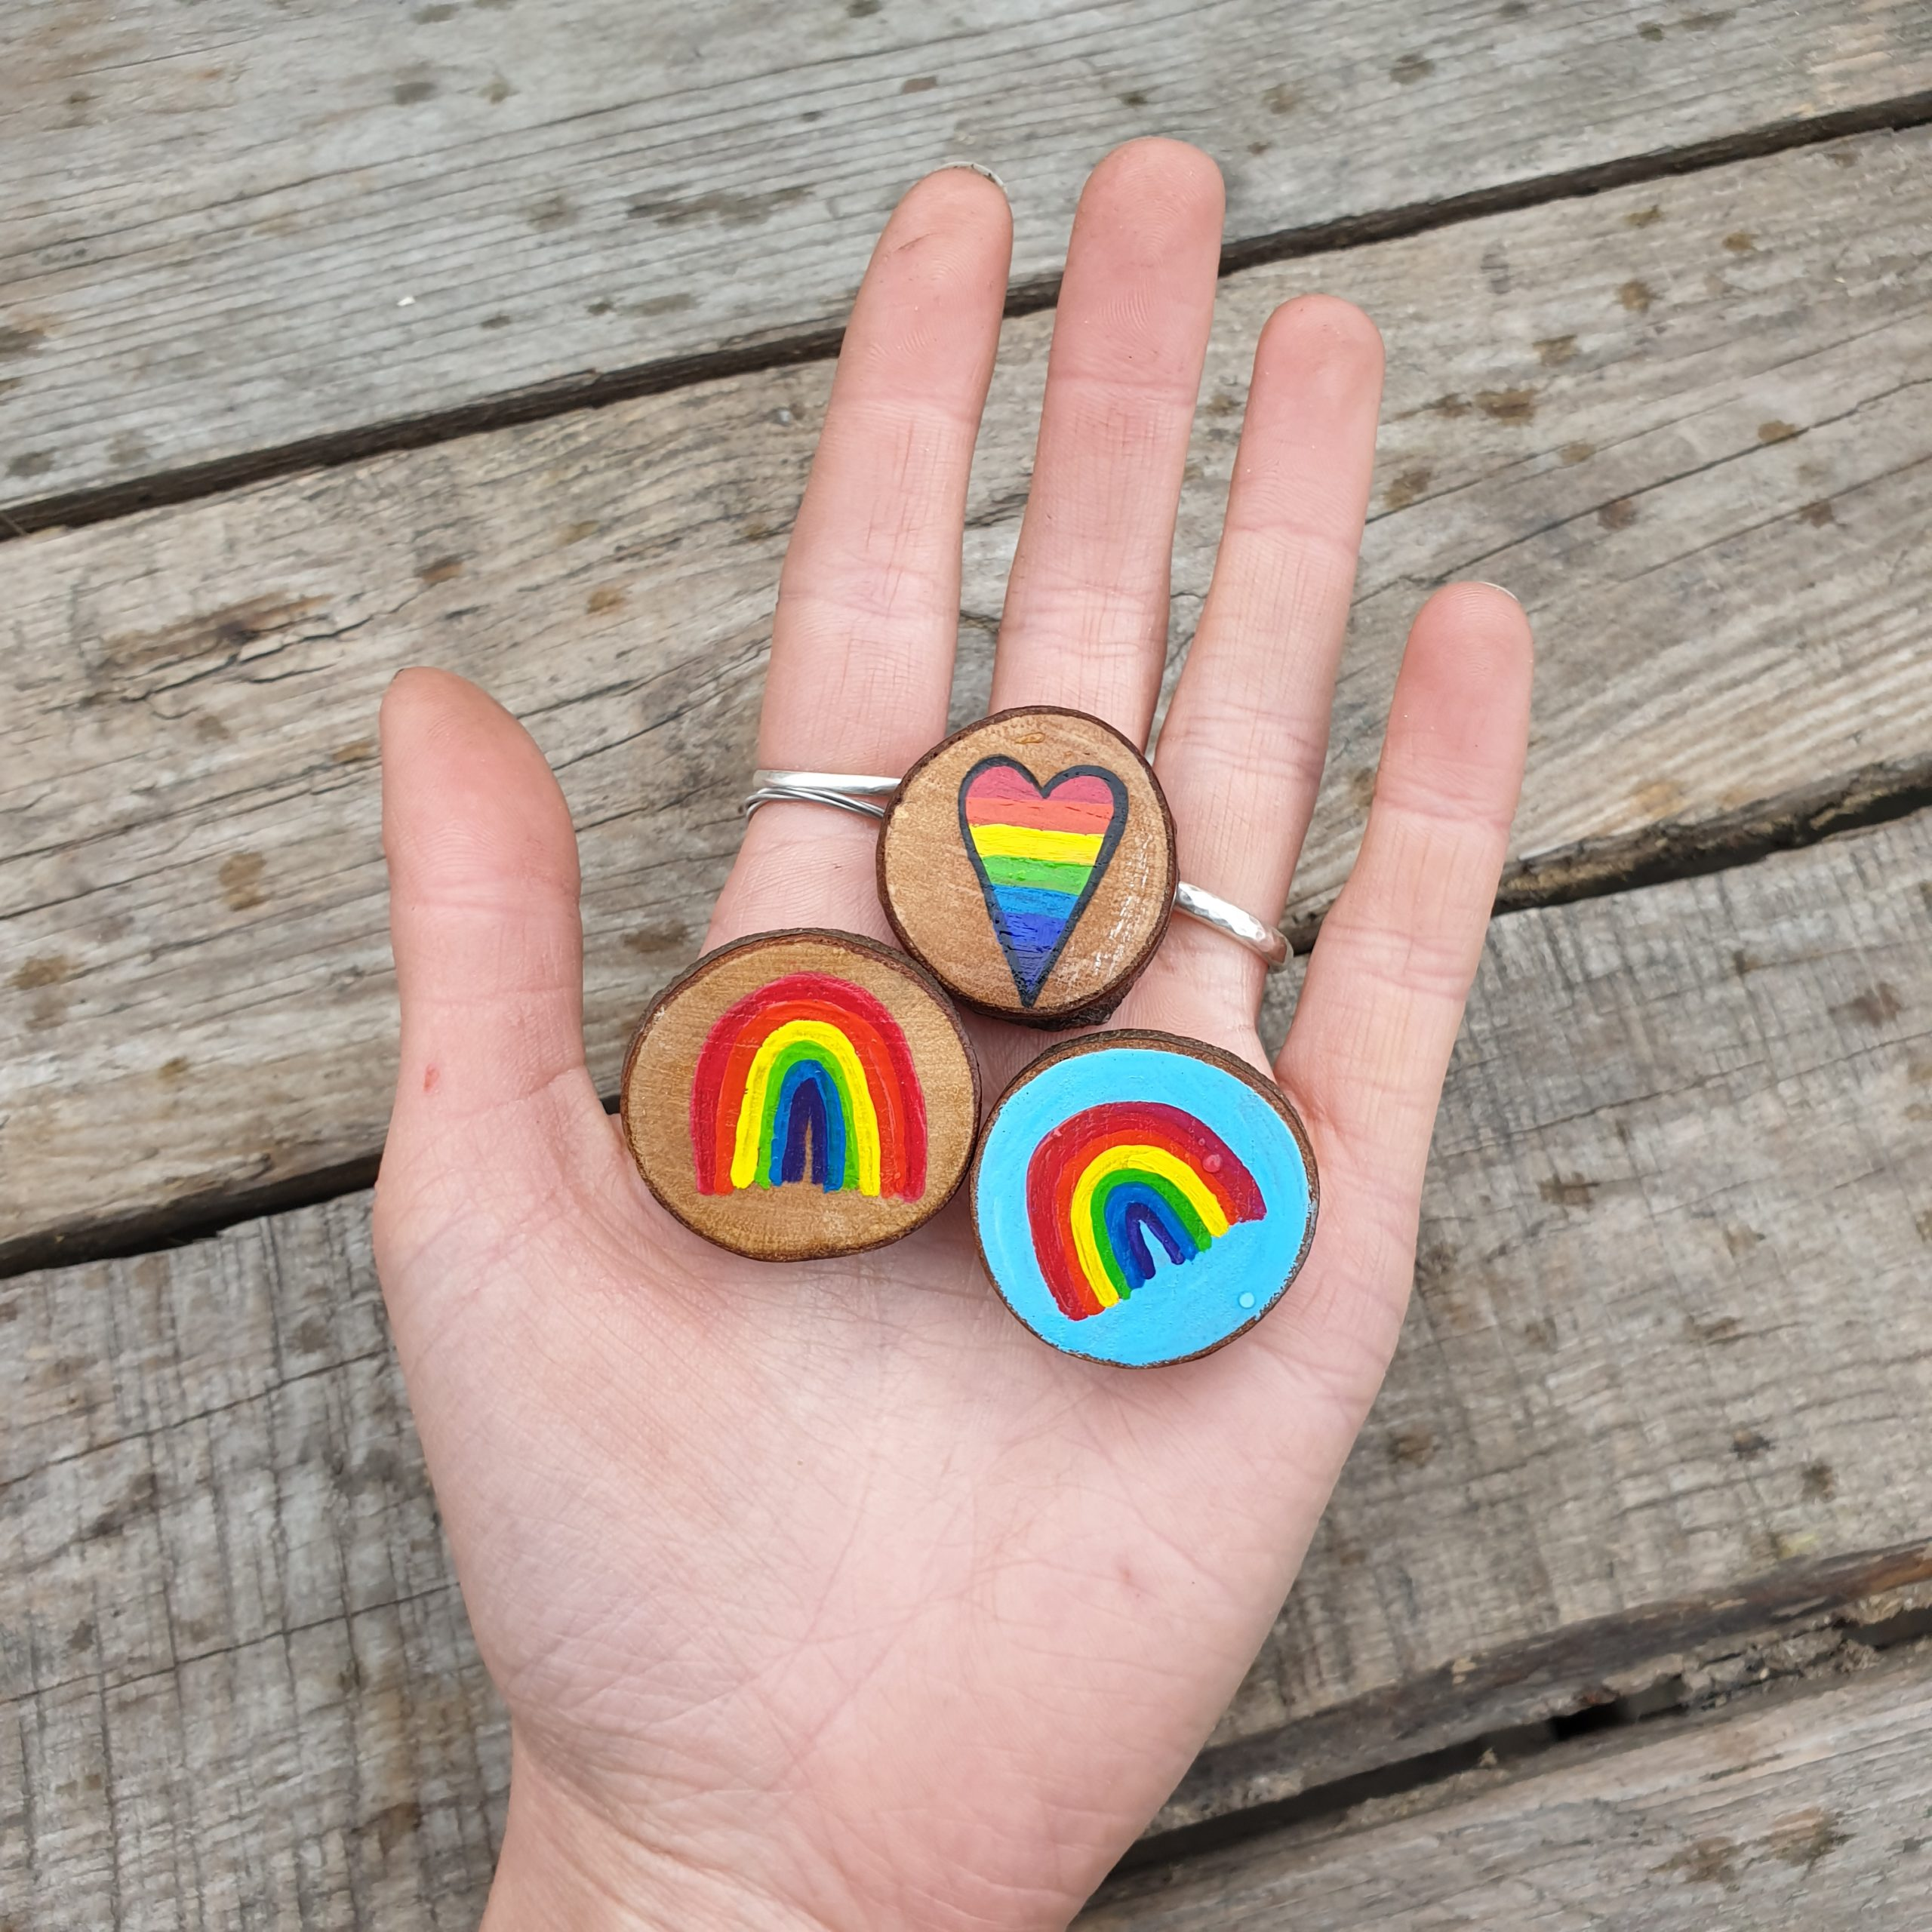 Sophias Illustration, Handmade Small Wood Slice Rainbow Brooch Pin Badge